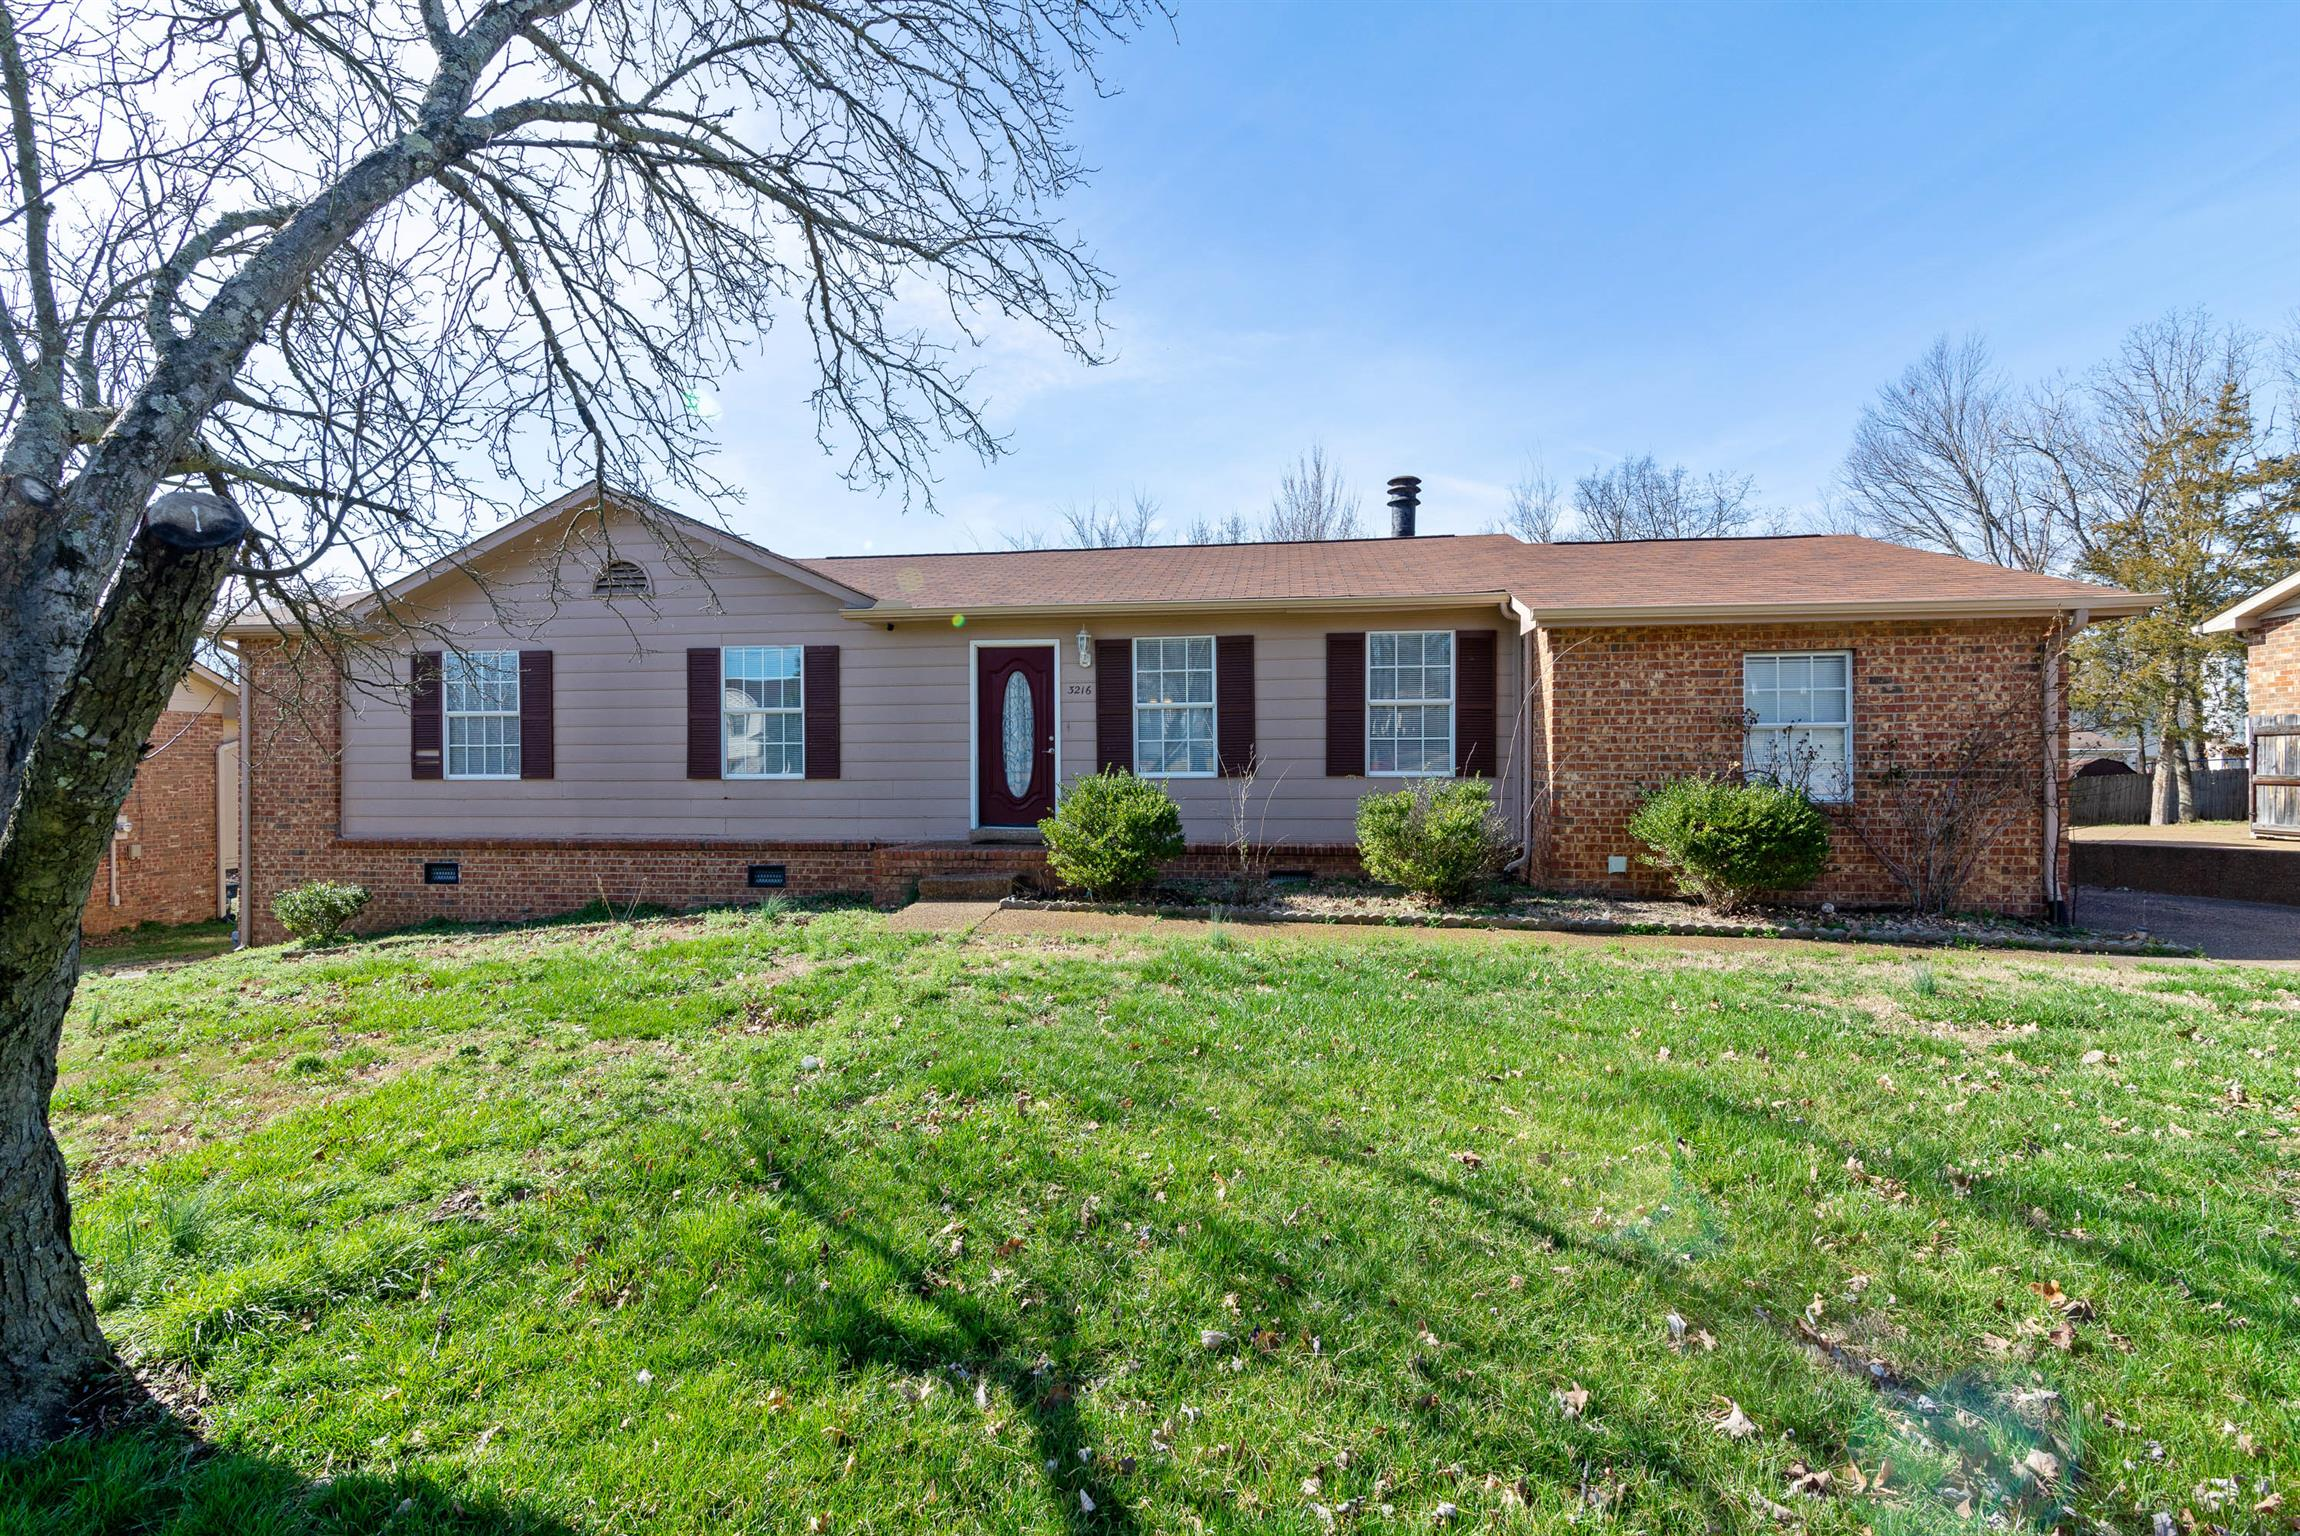 3216 Autumn Dr, Nashville-Antioch in Davidson County County, TN 37013 Home for Sale